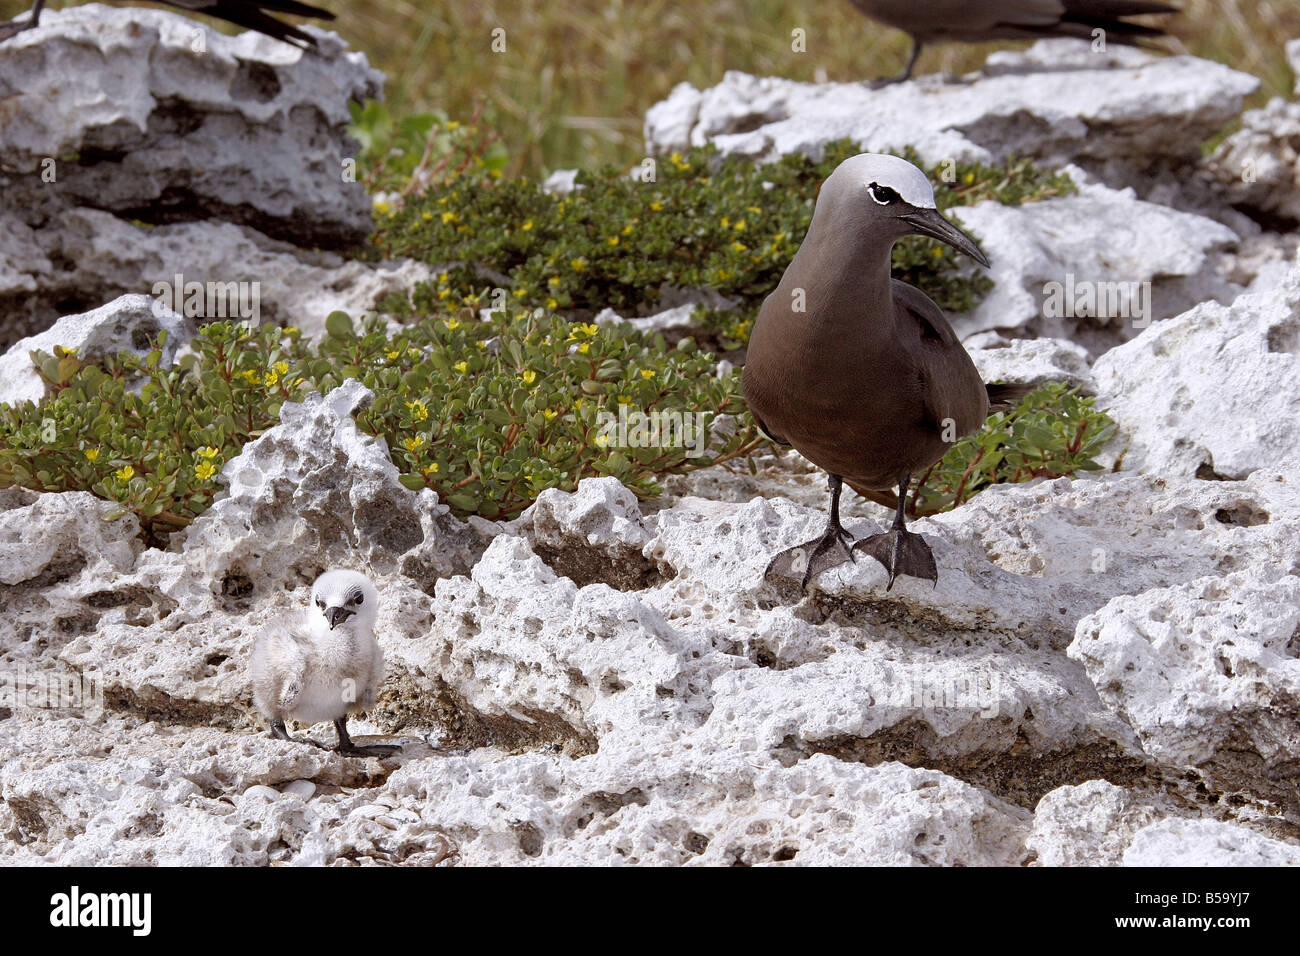 Common Noddy, Brown Noddy (Anous stolidus) standing with its chick on coral rocks - Stock Image